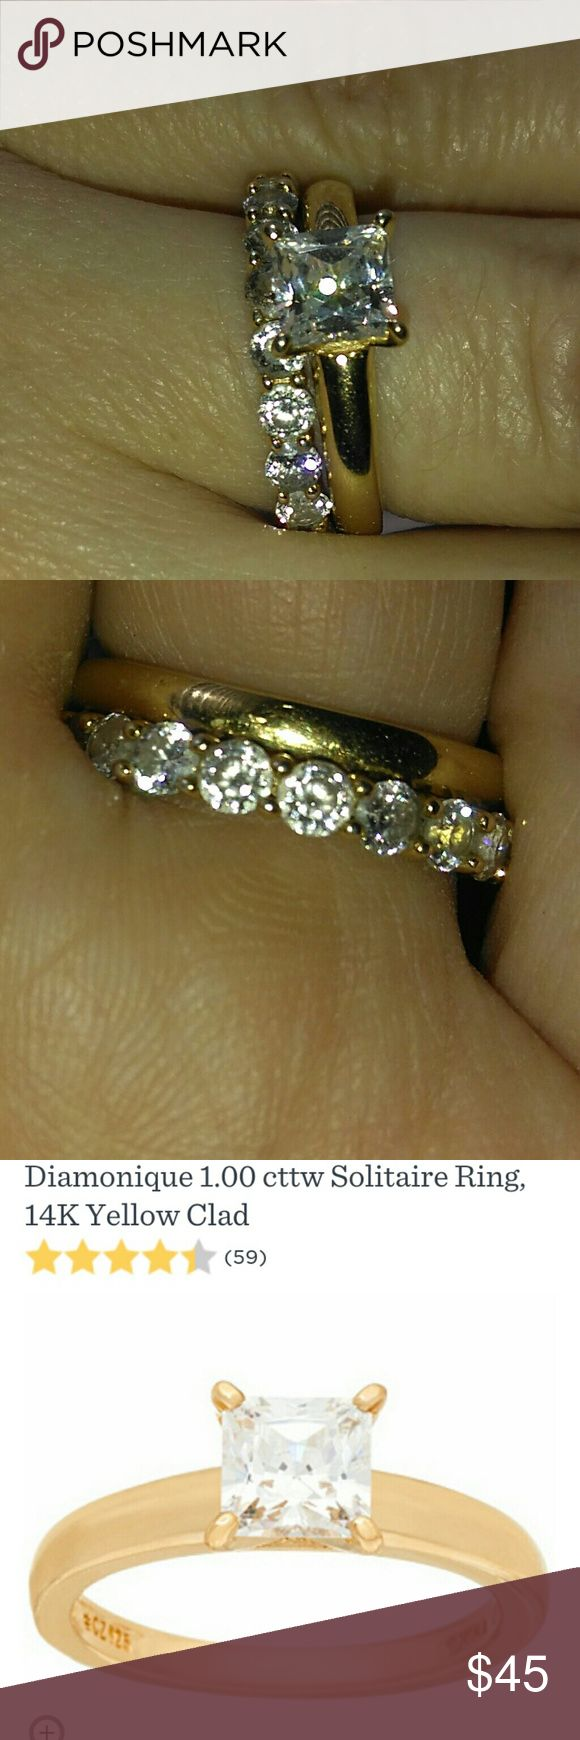 Diamonique Eternity/ Solitaire 14k Gold Clad Rings Pre-owned. Bought February 2017 to replace my lost engagement ring. I am selling because my husband bought me an anniversary ring last November and I haven't worn this set since. Please note: Both are 14k Gold Clad. I never wore in or near water and kept in jewelry bag to prevent turning or damaging. For additional info QVC has great infomercials. Please see photos for complete description. A box, jewelry bag, and authenticity paper will be…